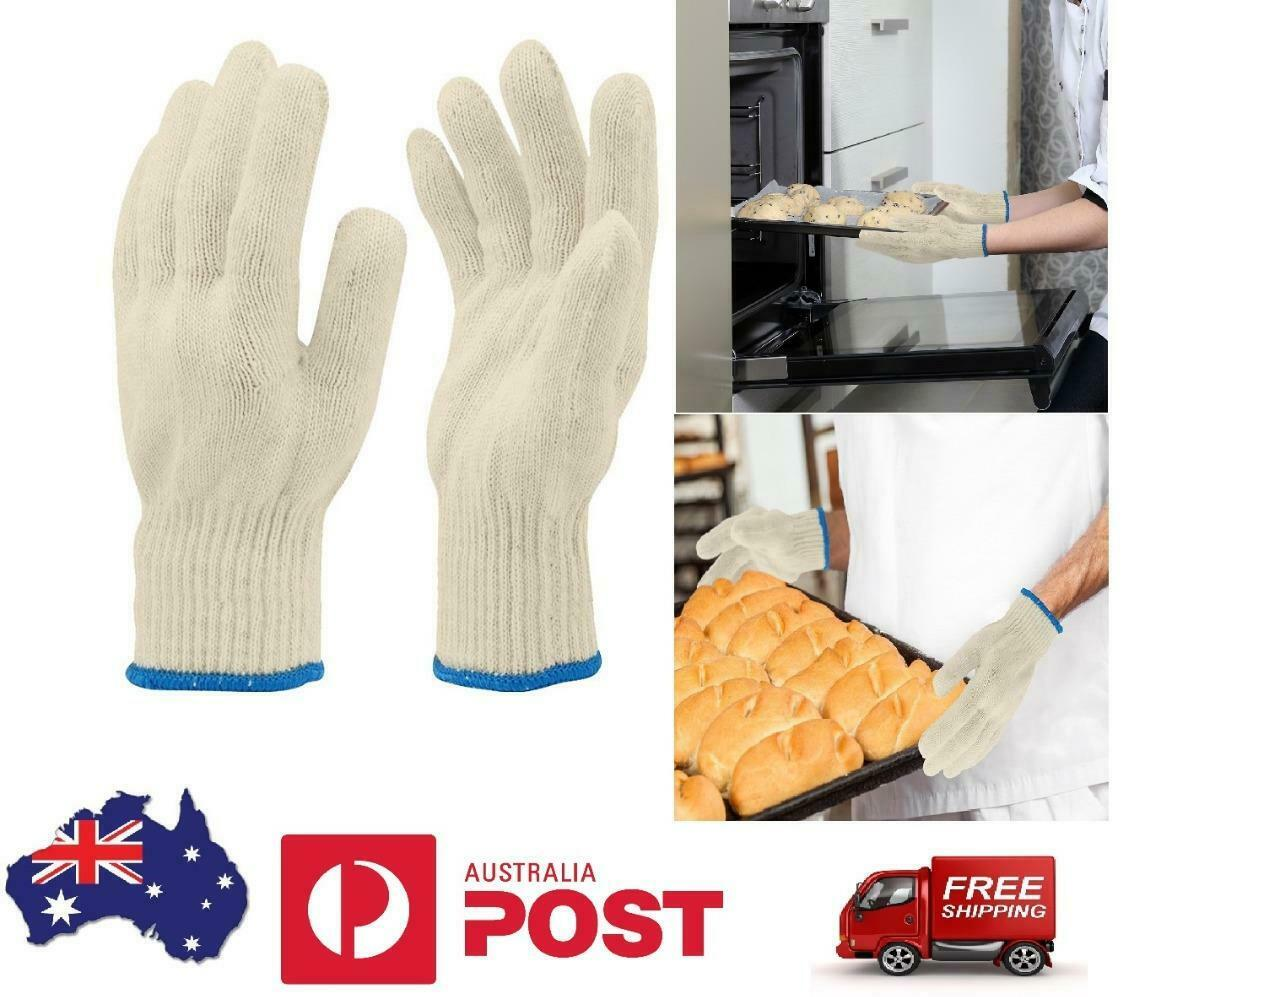 1 Pair Oven Gloves Mitts Hand Kitchen Cooking Baking Heat Resistant Cotton BBQ